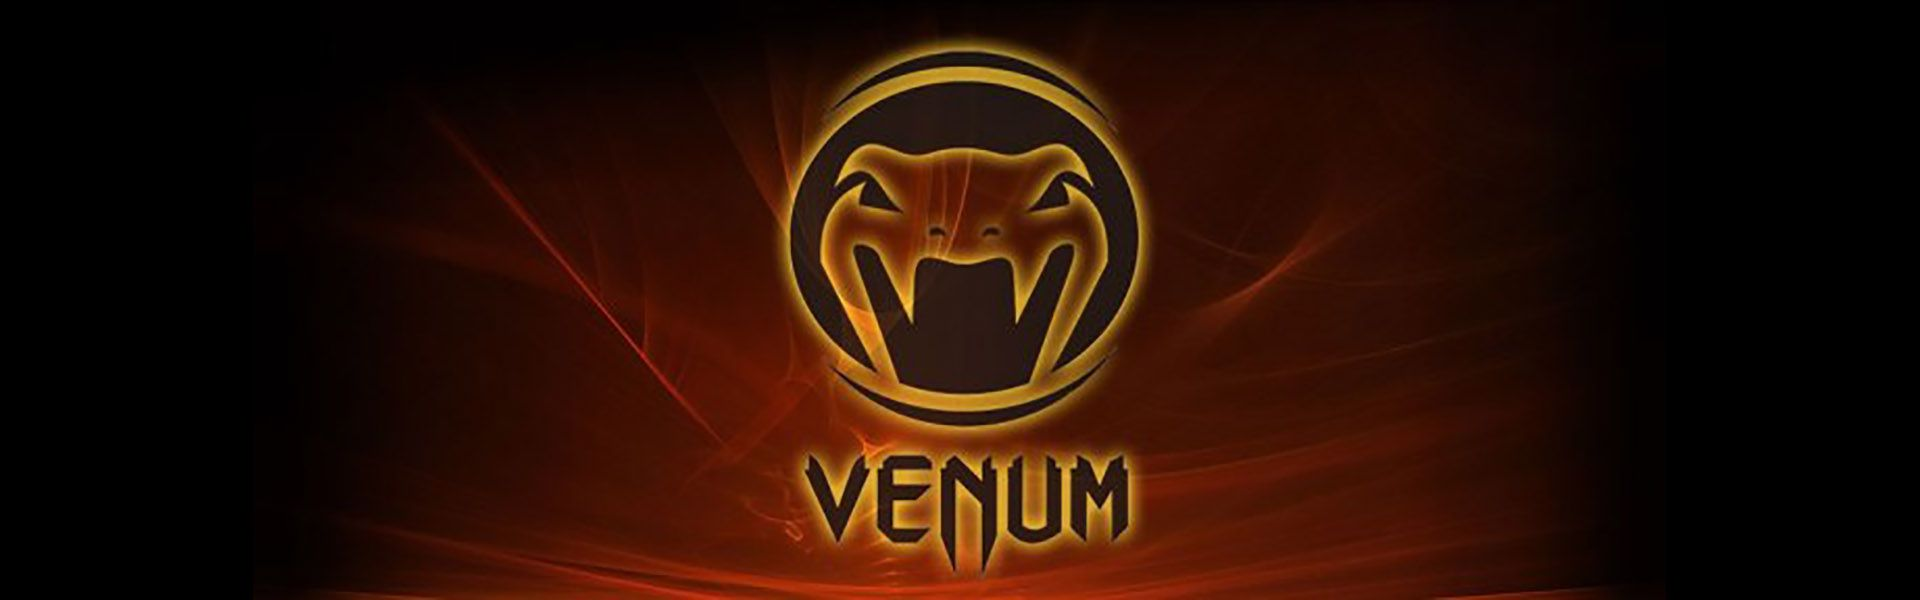 Venum Mma Wallpapers Top Free Venum Mma Backgrounds